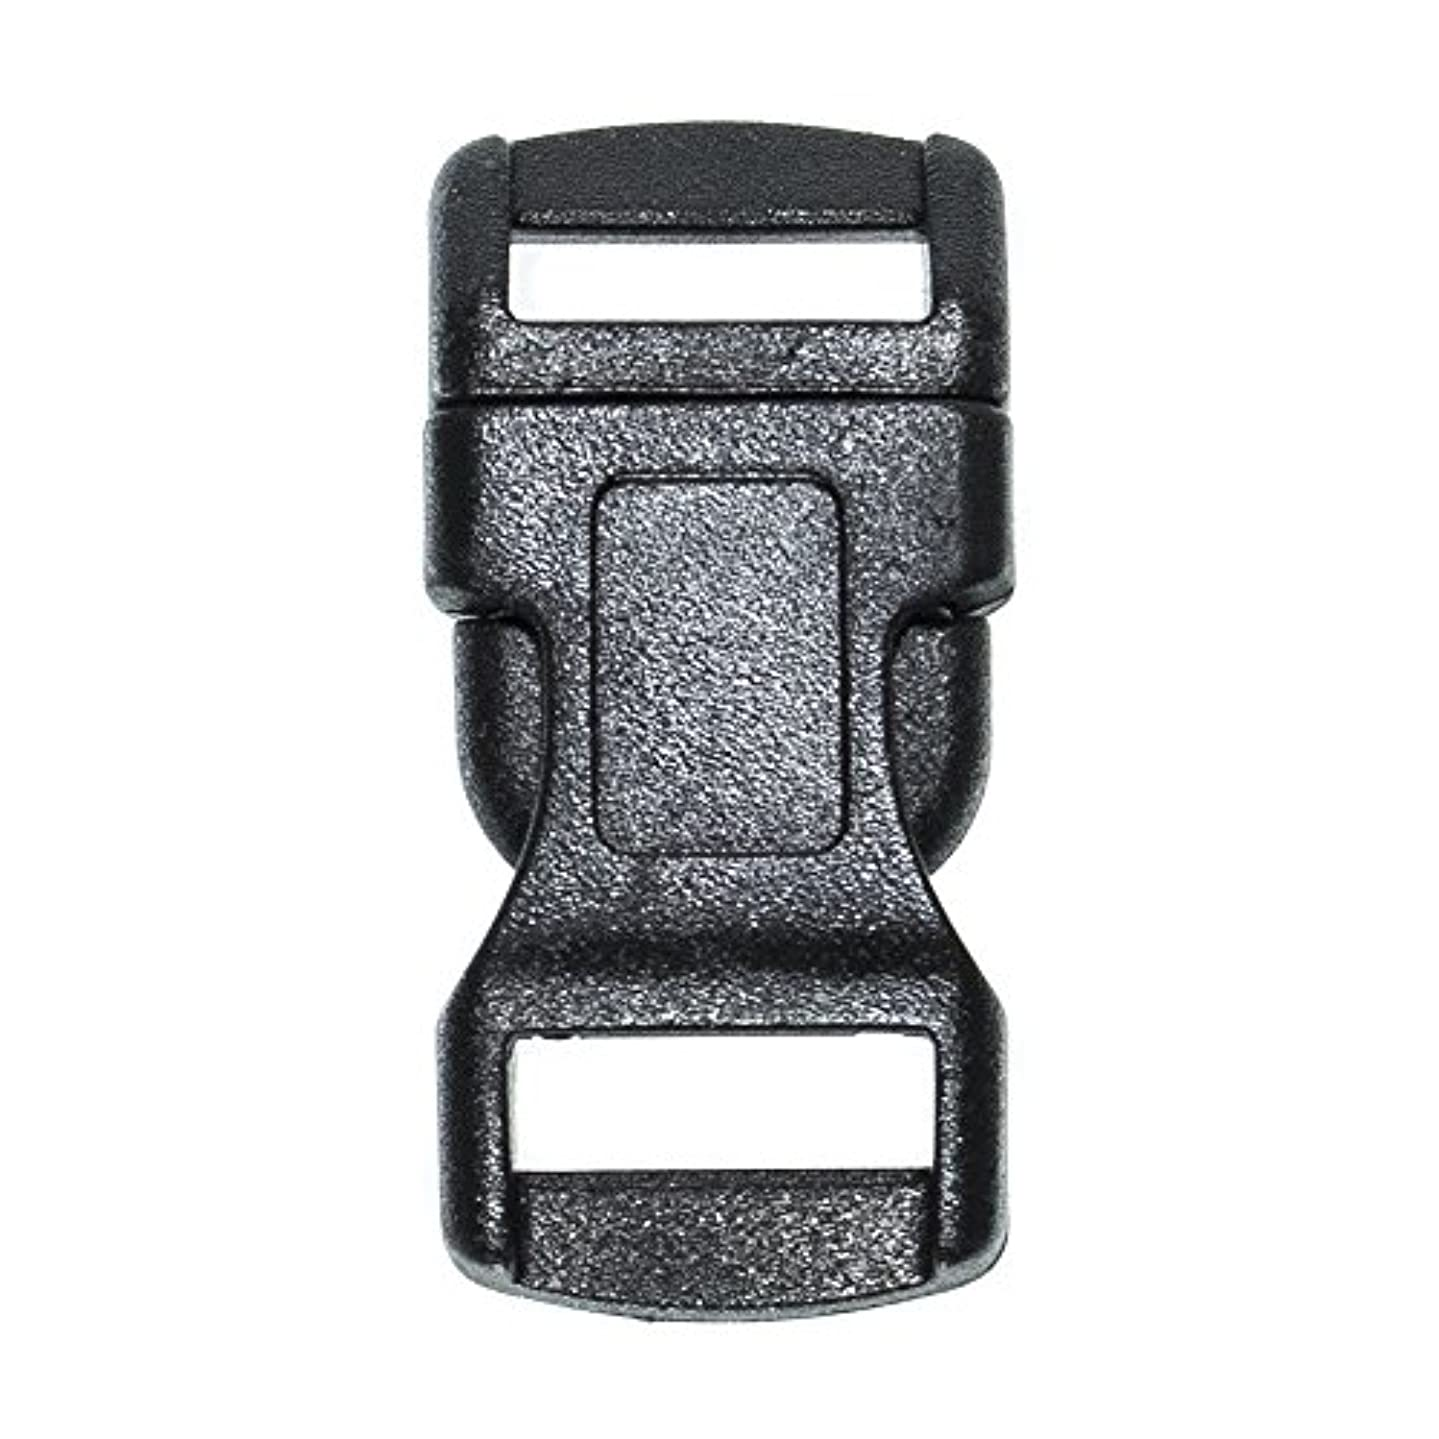 West Coast Paracord Black Side Release Buckles - 5/8, 3/8, 3/4, 1/2, and 1 inch Sizes - Single or Double Bar - Pack Sizes from 10 to 1000